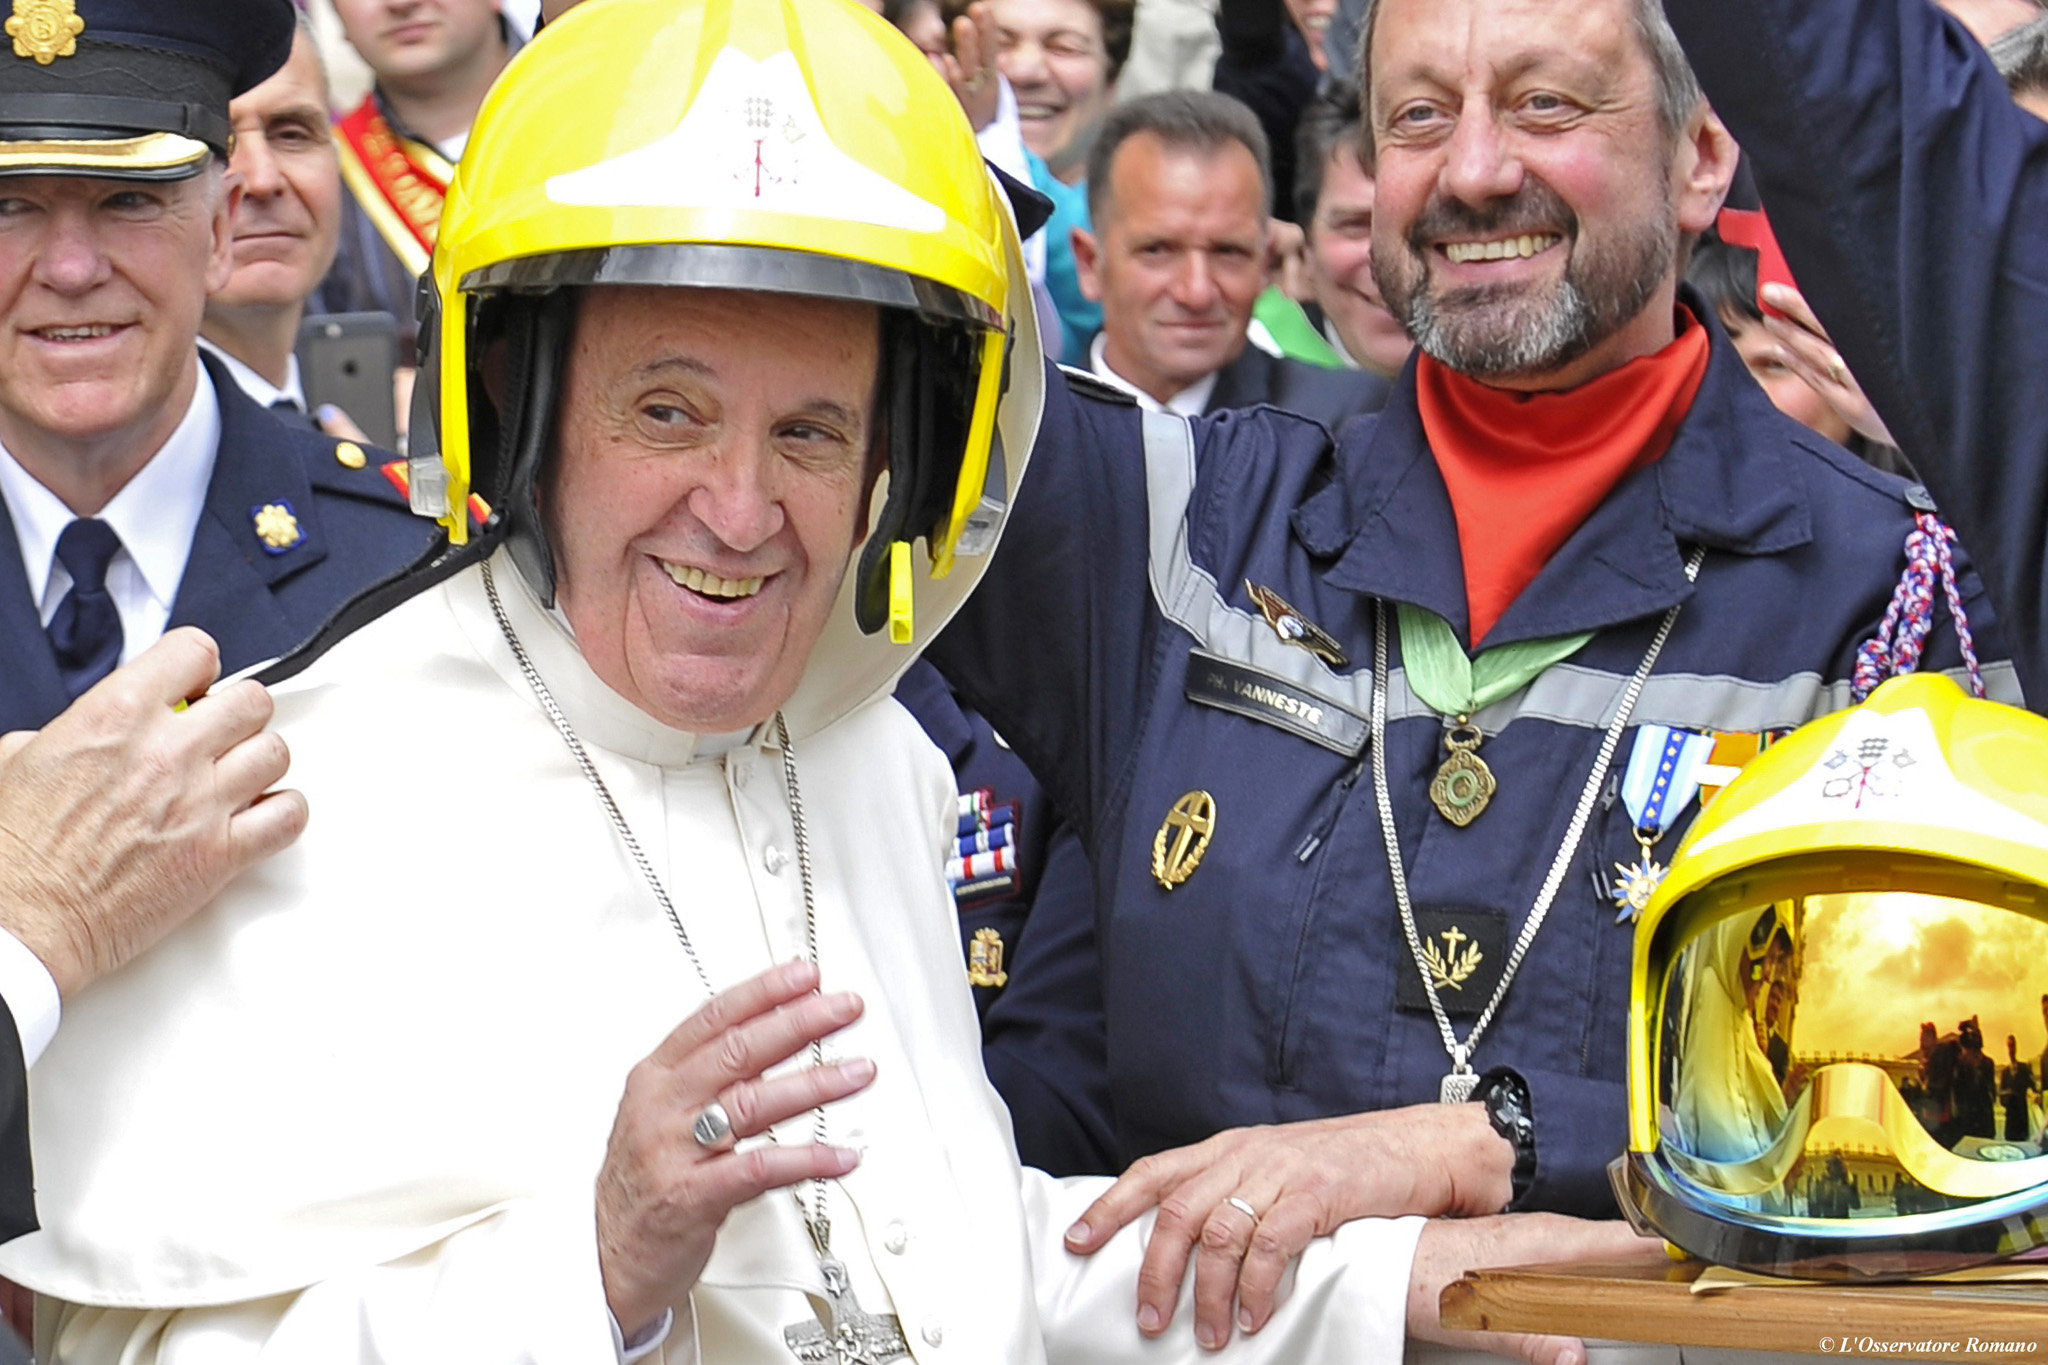 "This handout picture released by the Vat...This handout picture released by the Vatican press office shows Pope Francis wearing an elmet as he jokes with French firemen of Paris (Pompiers de Paris) at the end of his weekly general audience on April 13, 2016 at the Vatican. AFP PHOTO / OSSERVATORE ROMANO/HO  RESTRICTED TO EDITORIAL USE - MANDATORY CREDIT ""AFP PHOTO / OSSERVATORE ROMANO"" - NO MARKETING NO ADVERTISING CAMPAIGNS - DISTRIBUTED AS A SERVICE TO CLIENTSHO/AFP/Getty Images"